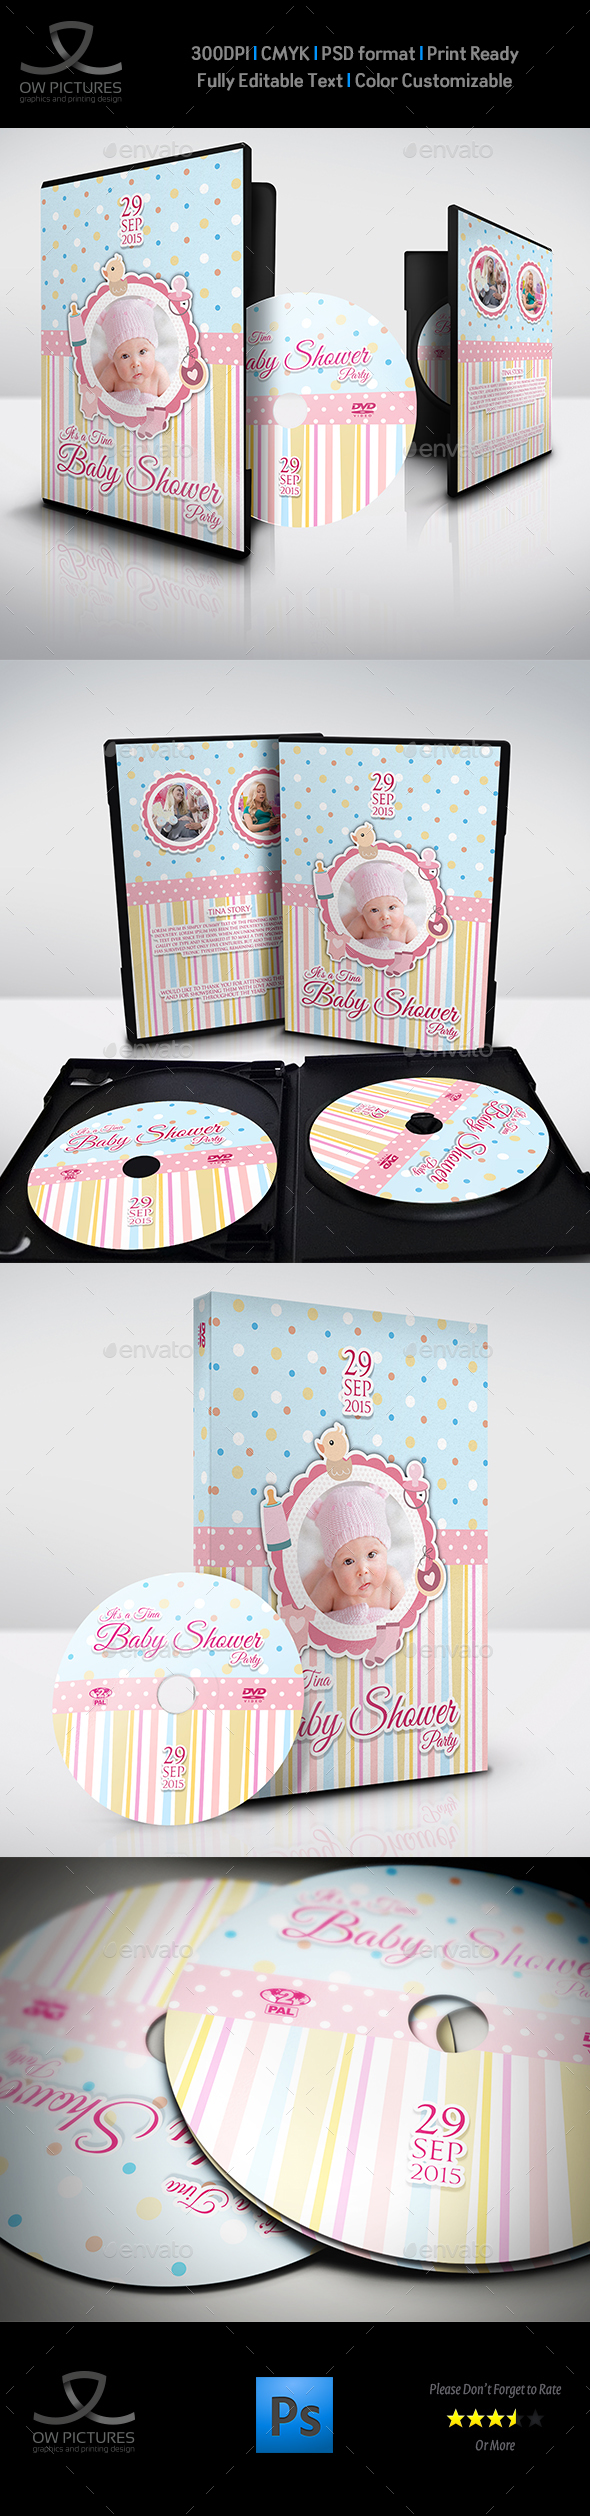 Baby Shower Party DVD Template Vol.7 - CD & DVD Artwork Print Templates